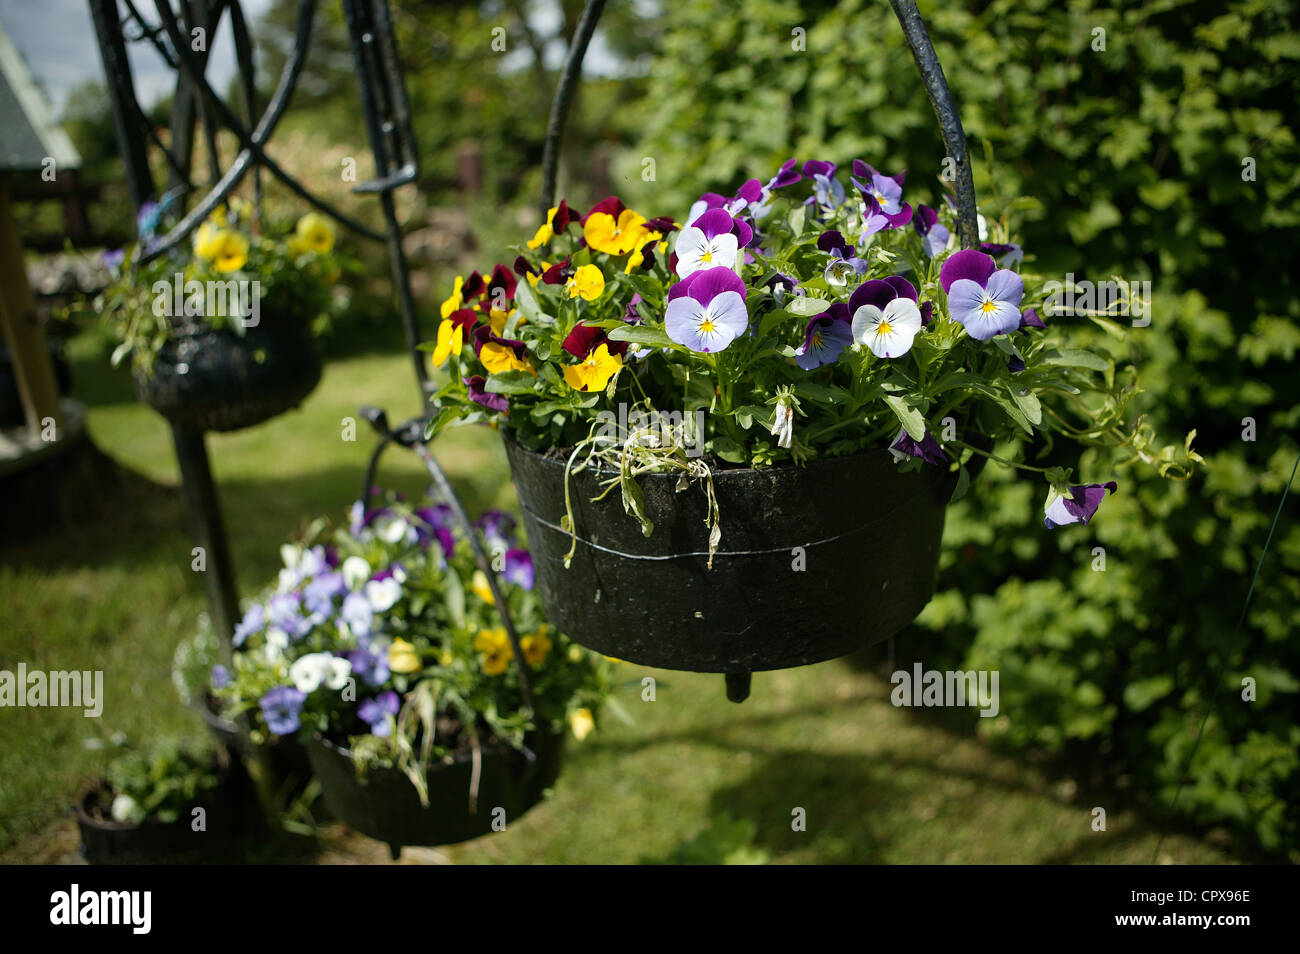 Pansies in a hanging cast iron pot  in a garden setting. Yellow, White,Purple. THree hanging pots Stock Photo